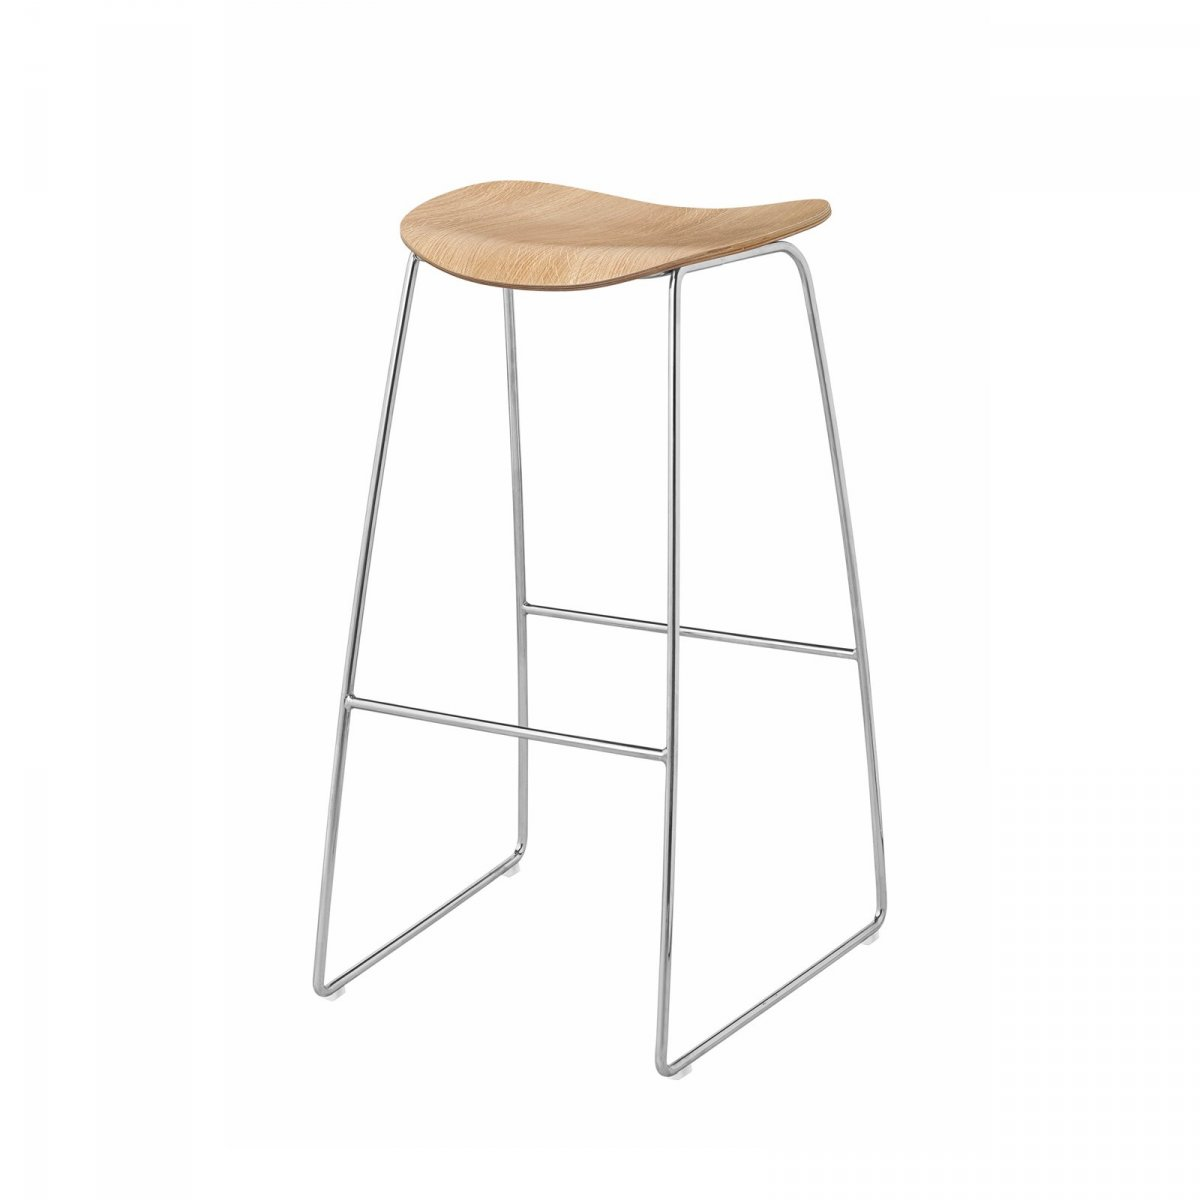 Gubi 2D Stool Sled Base, oak + chrome.